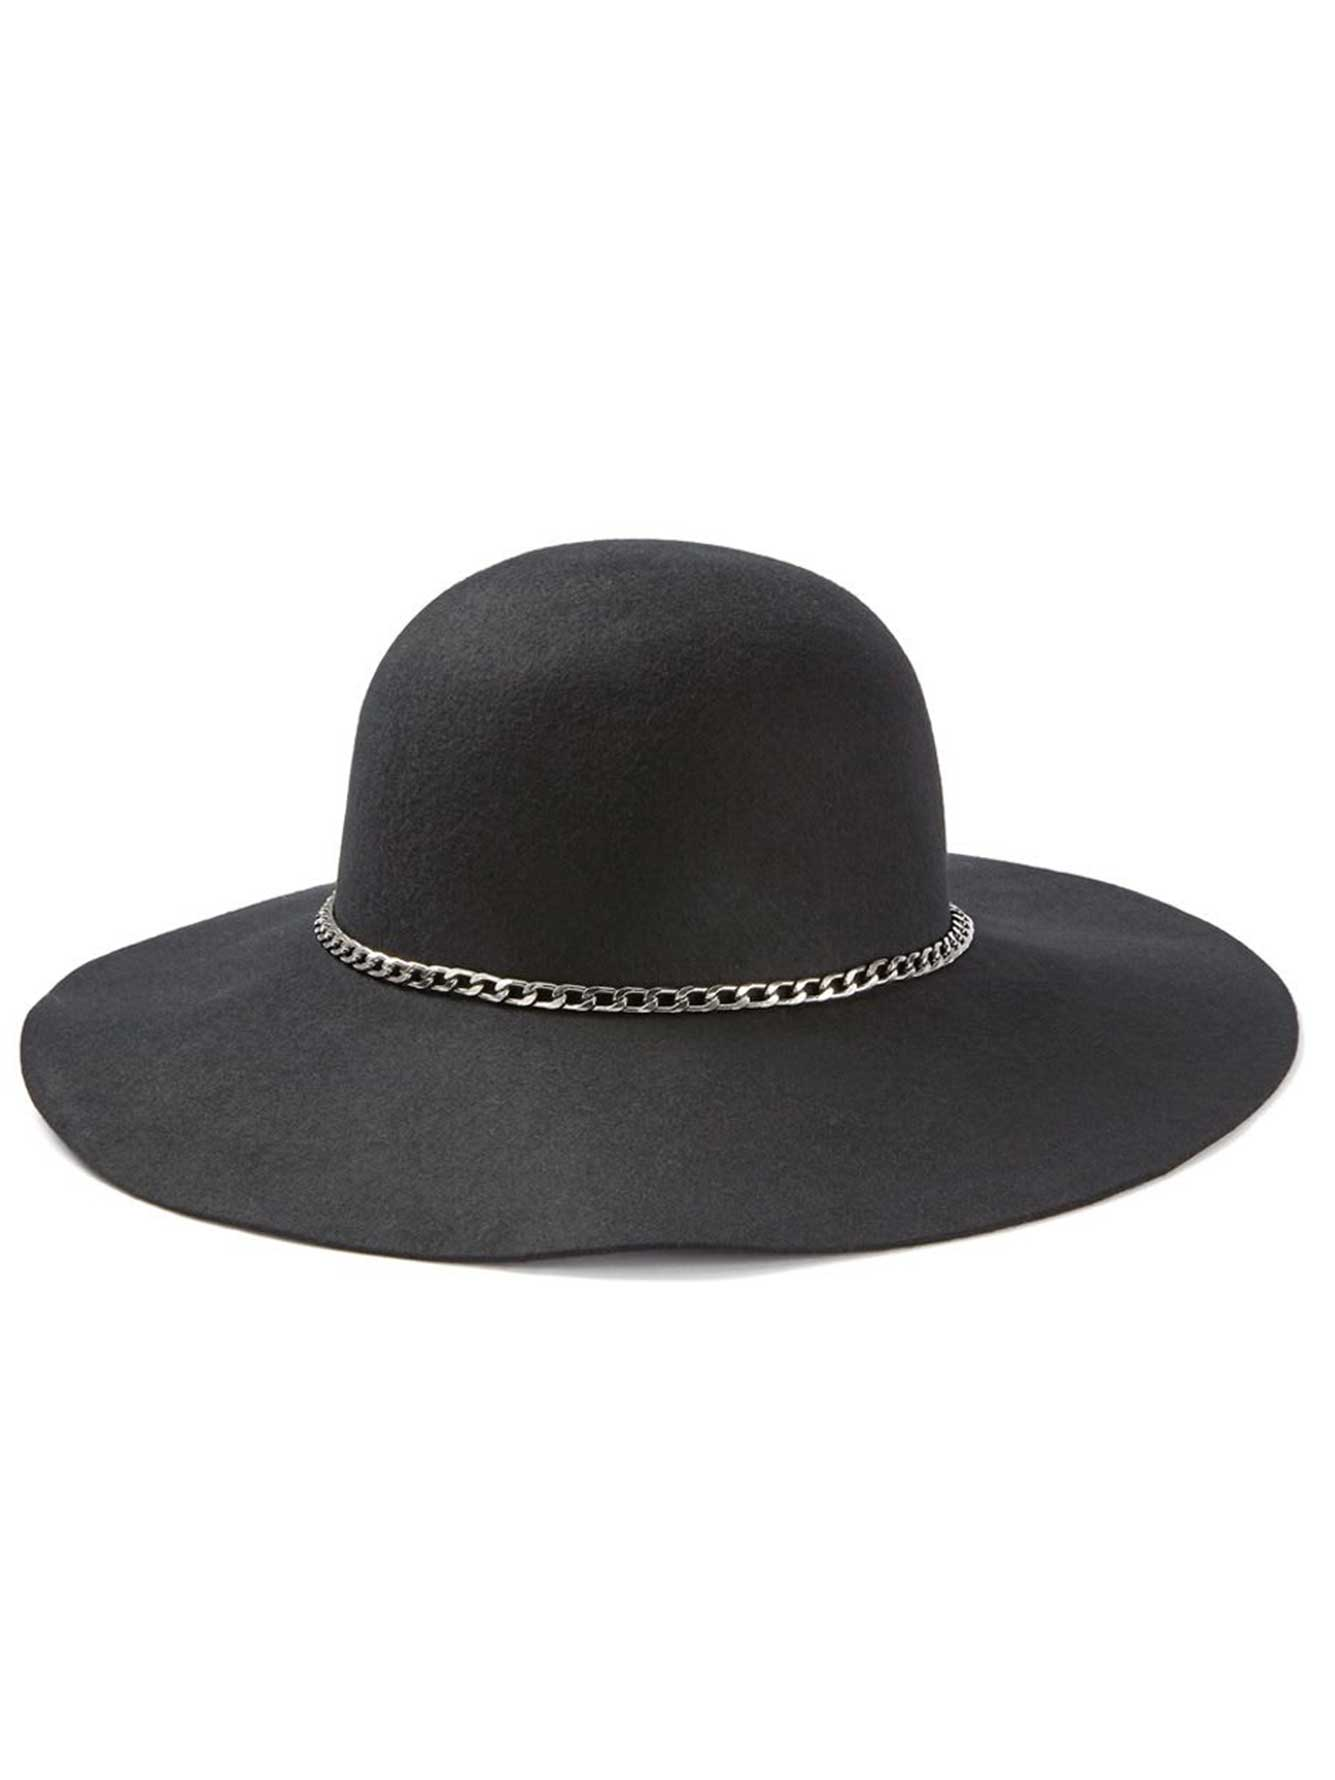 Wide Brim Felt Hat  b117648e4209